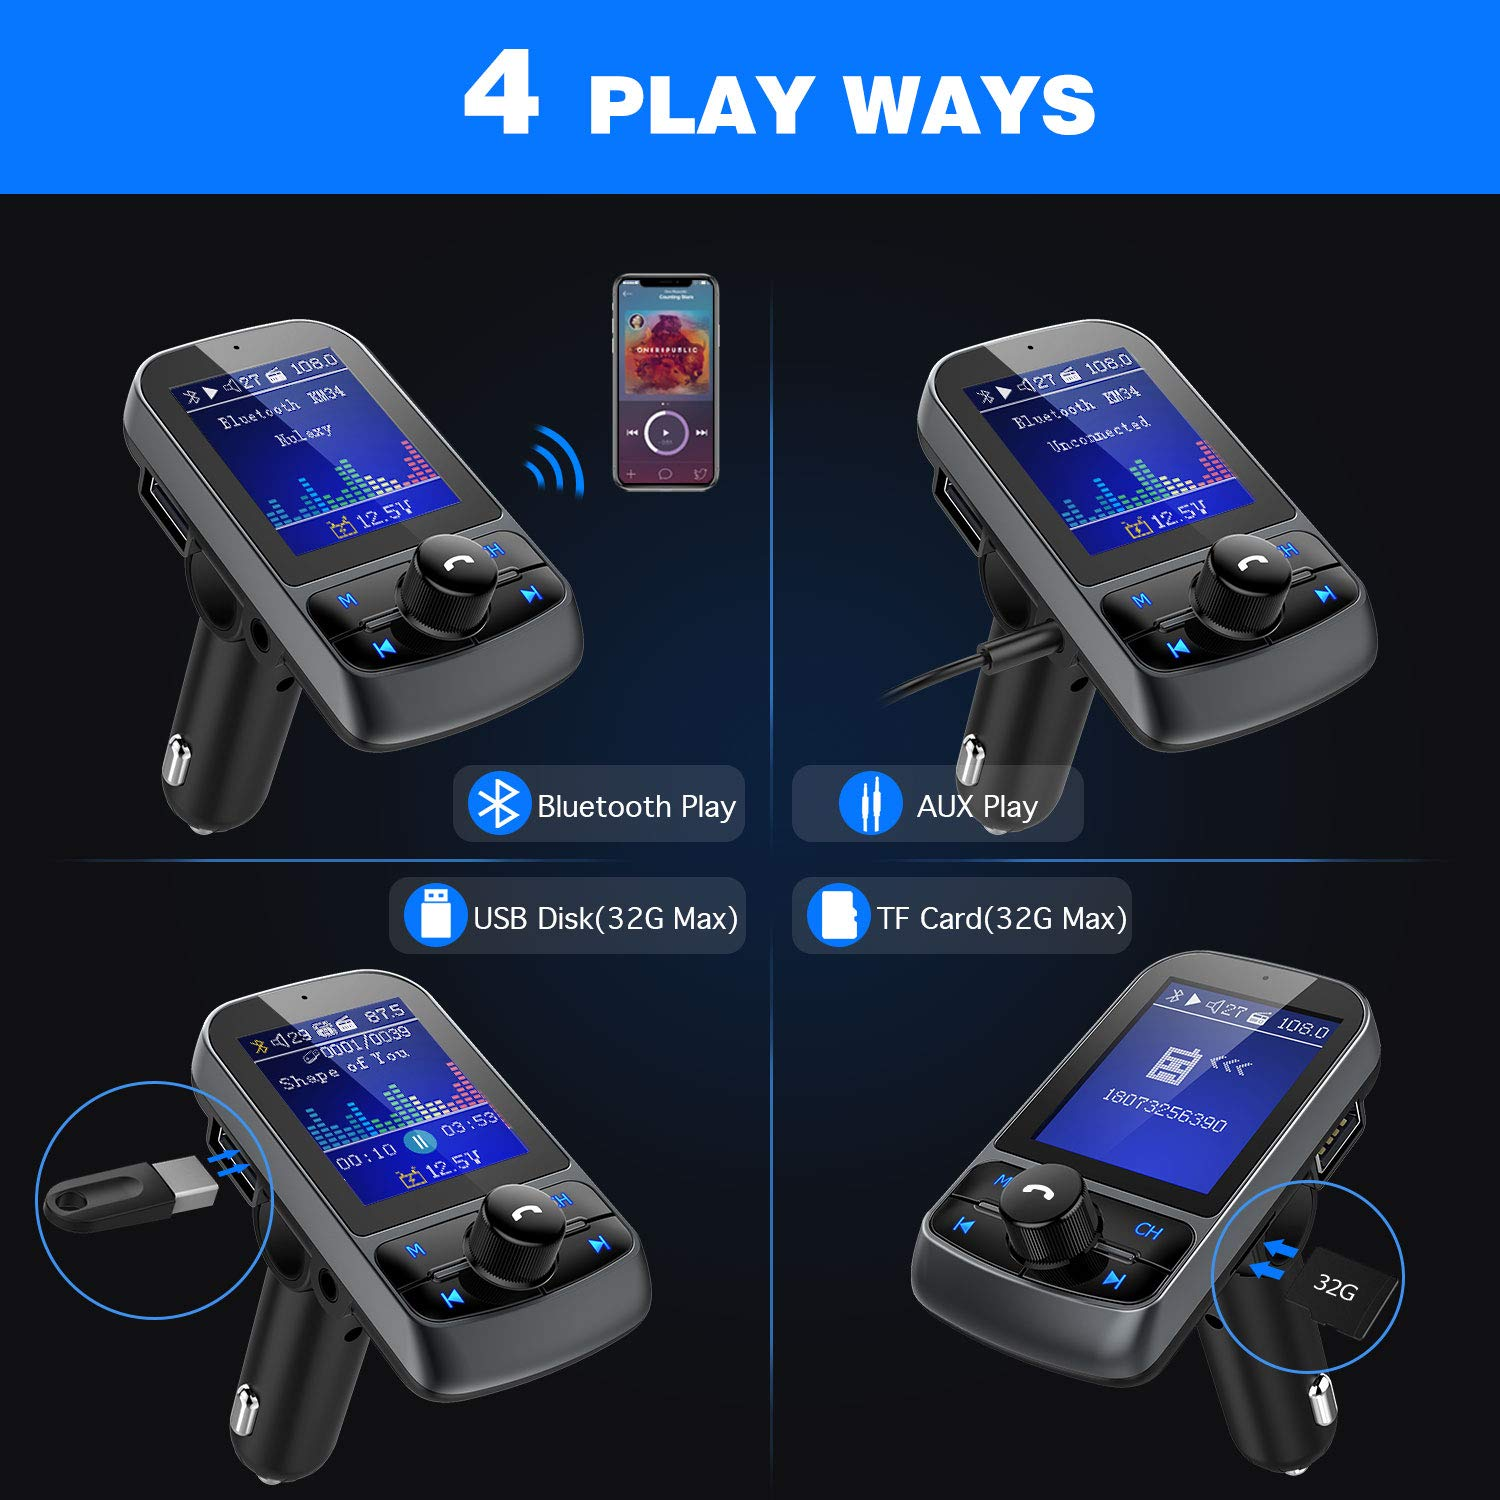 Fm Transmitter Nulaxy 18 Color Screen Bluetooth Simple Radio Circuit Use Your Mobile Phones Wireless In Car Adapter W Battery Voltage Reading Handsfree Calling